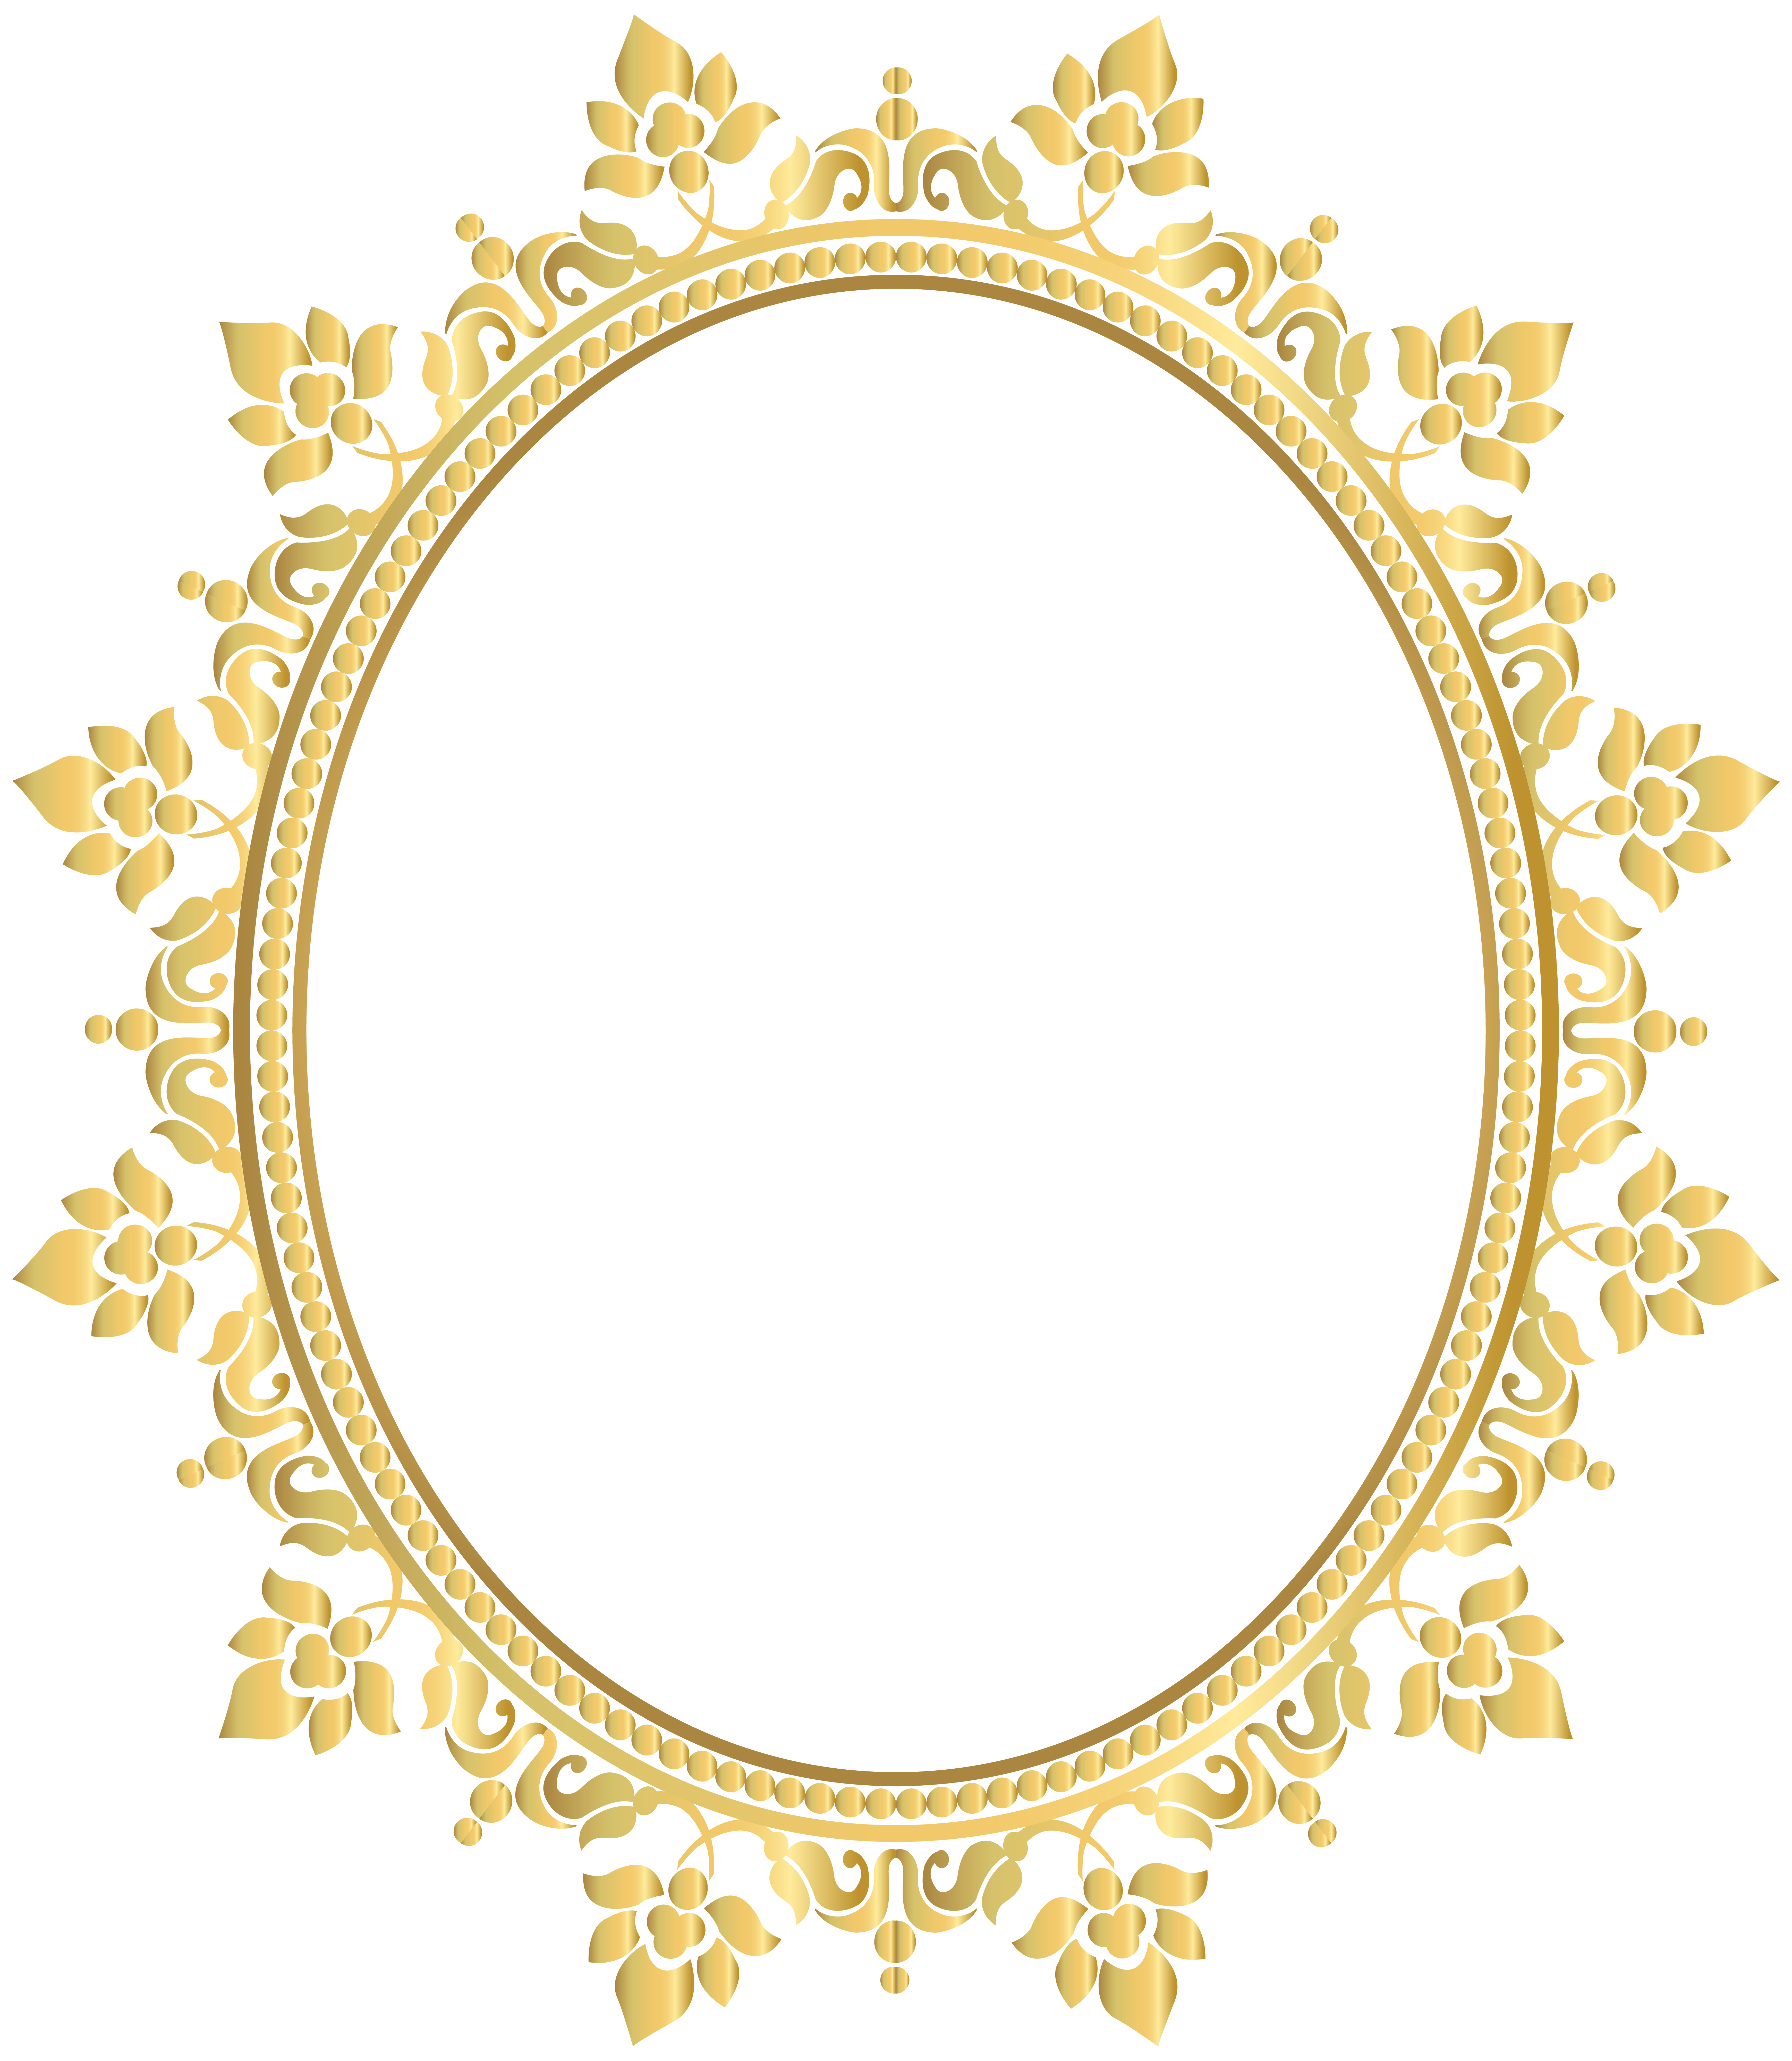 jpg transparent library Oval decorative border frame. Manicure clipart decor.